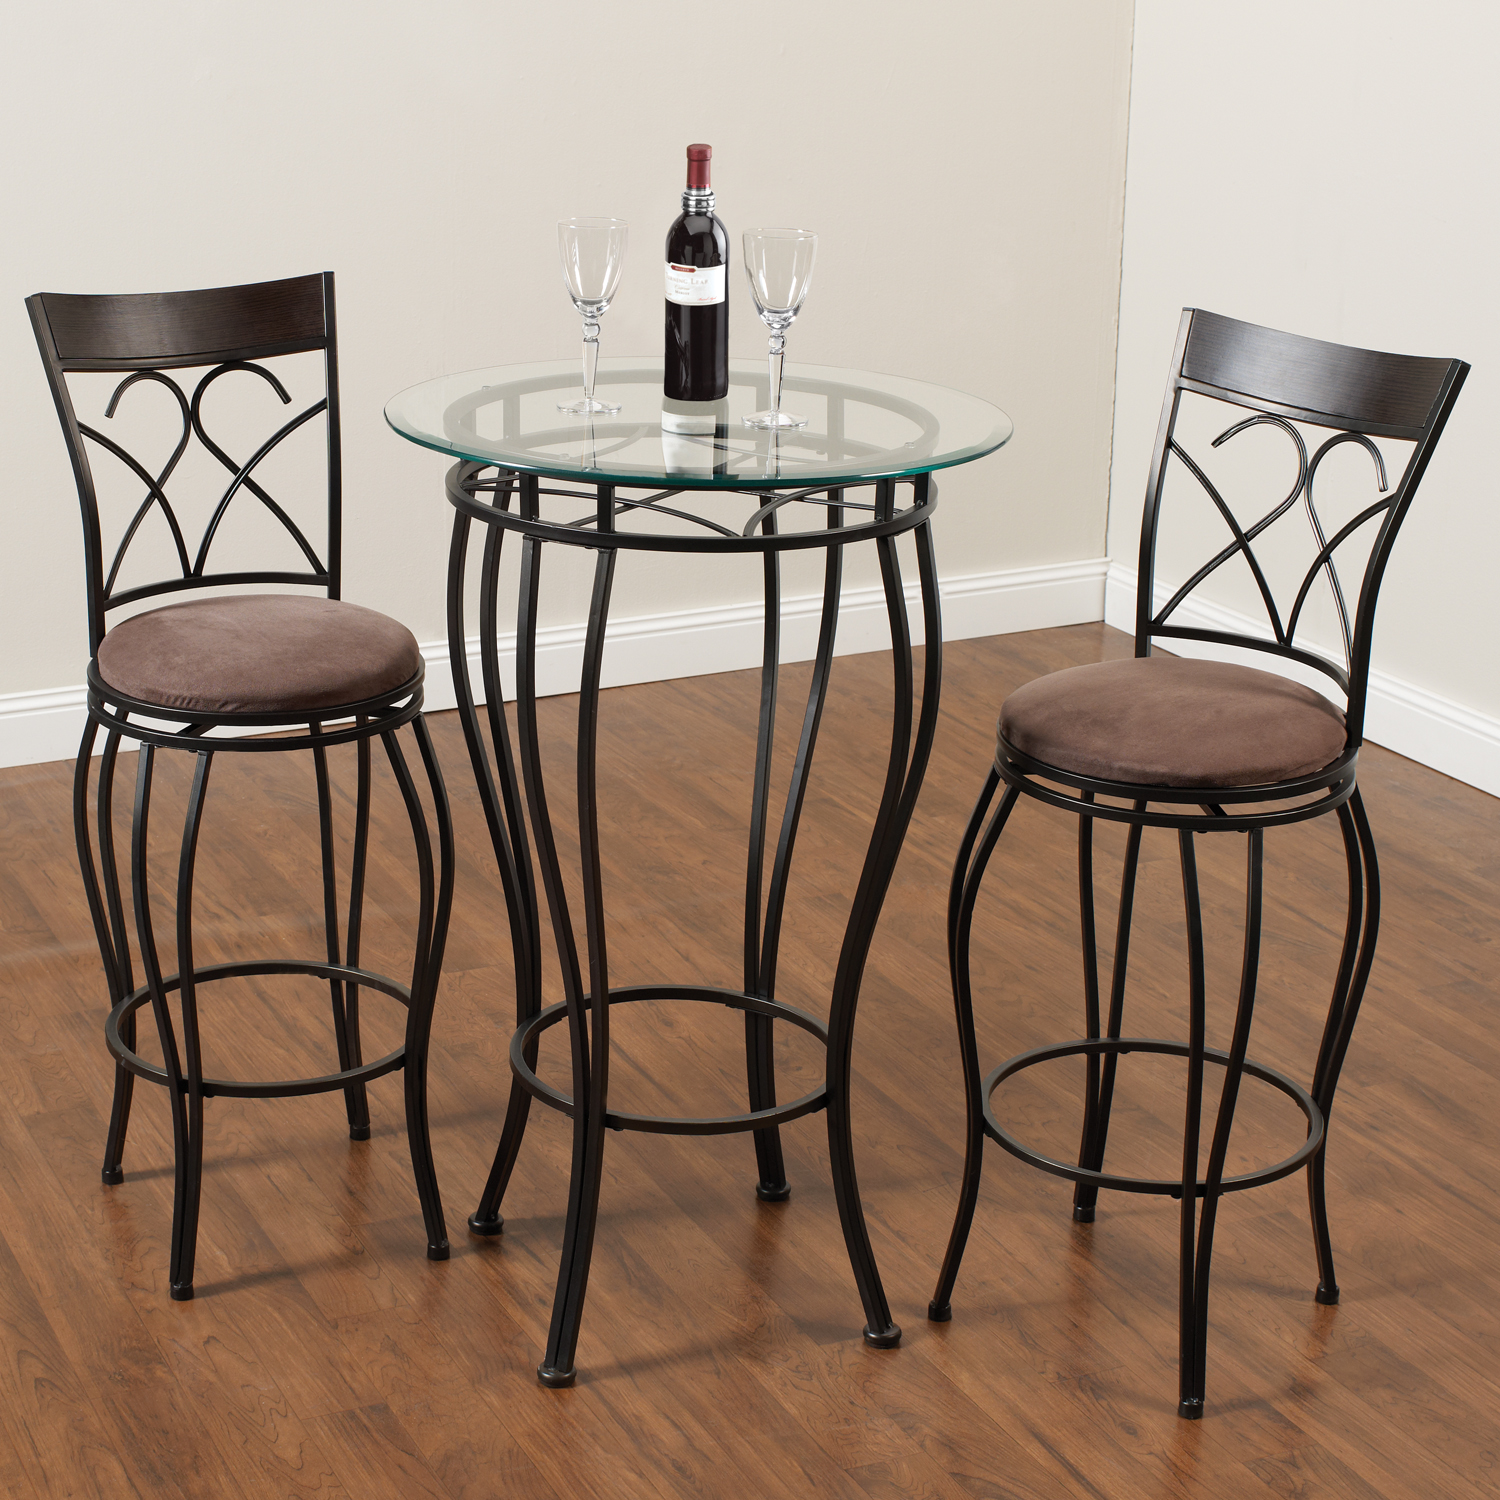 Home Source Fancy Metal Pub Table with 2 Chairs